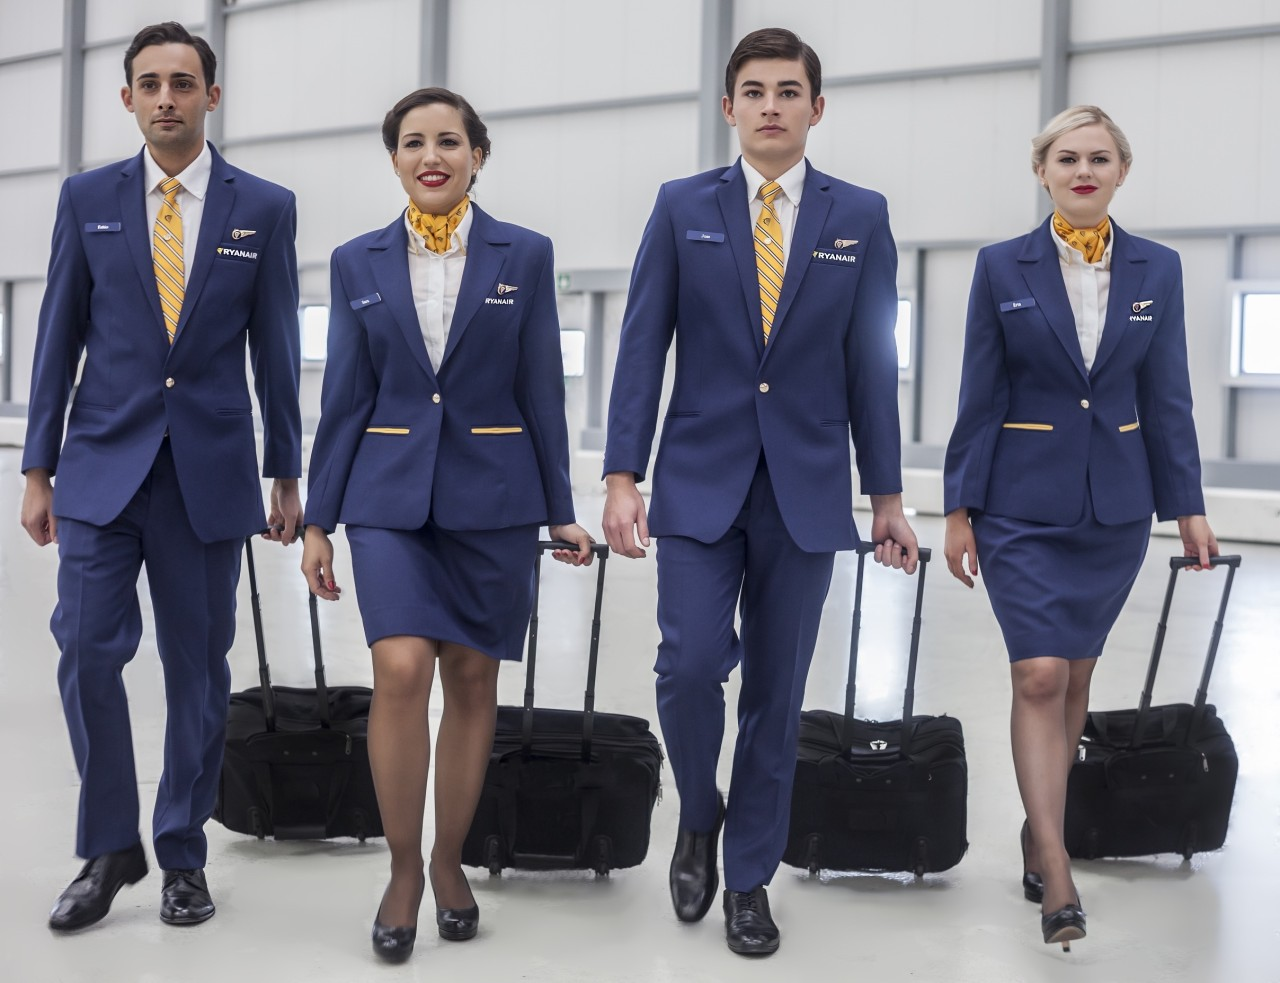 Ryanair-Uniforms-3-1280x983